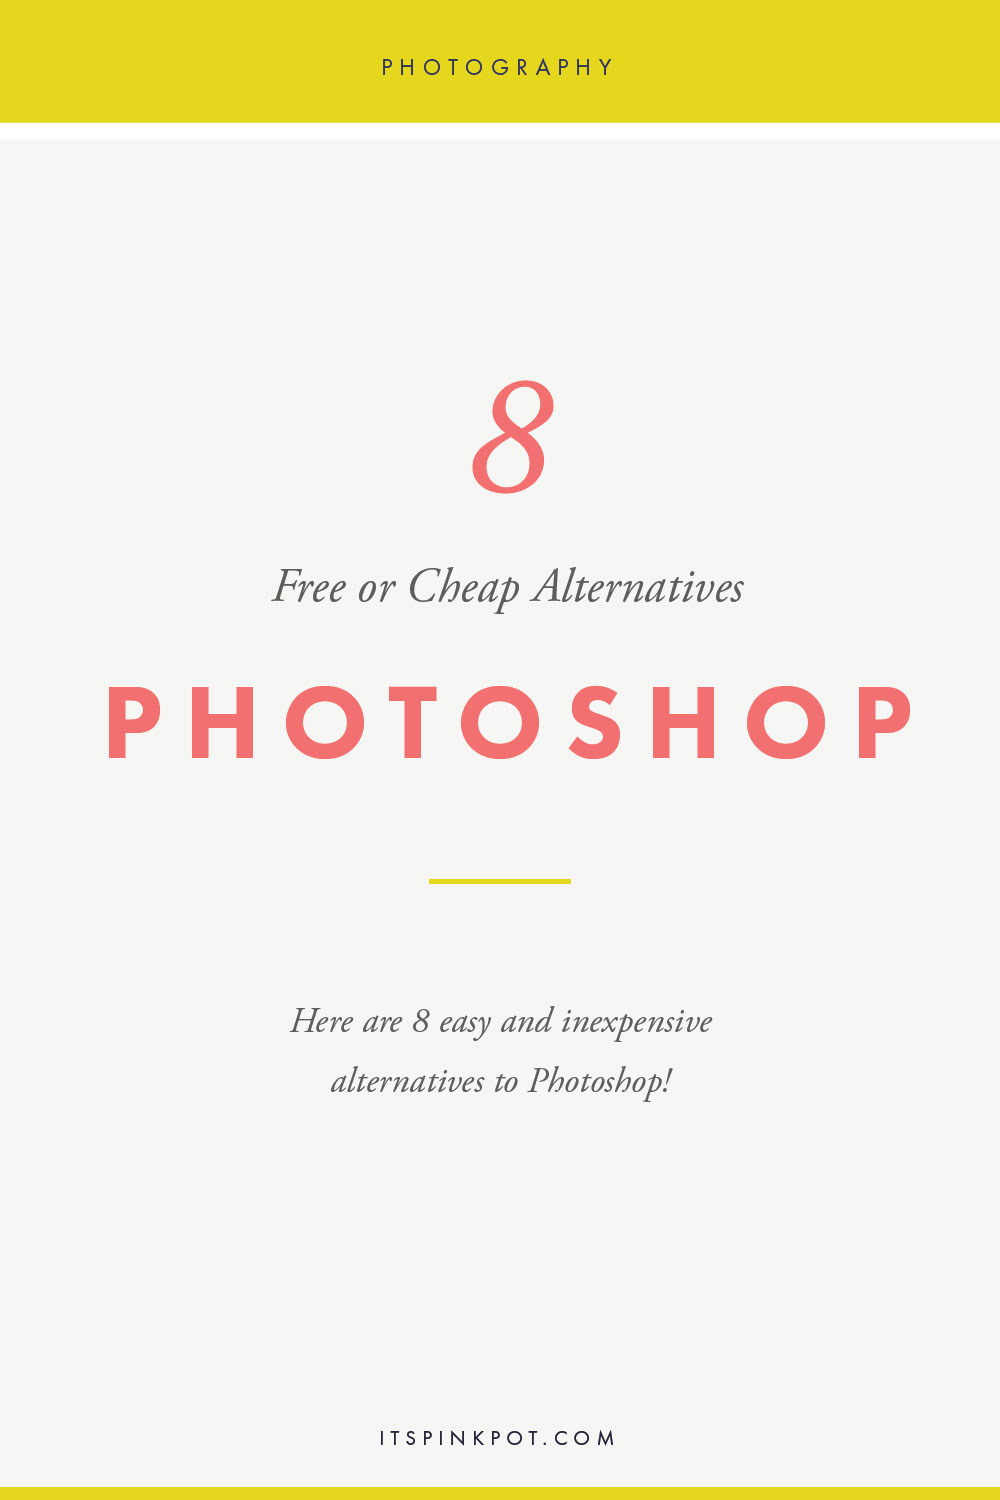 Here are 8 free or cheap alternatives to Photoshop